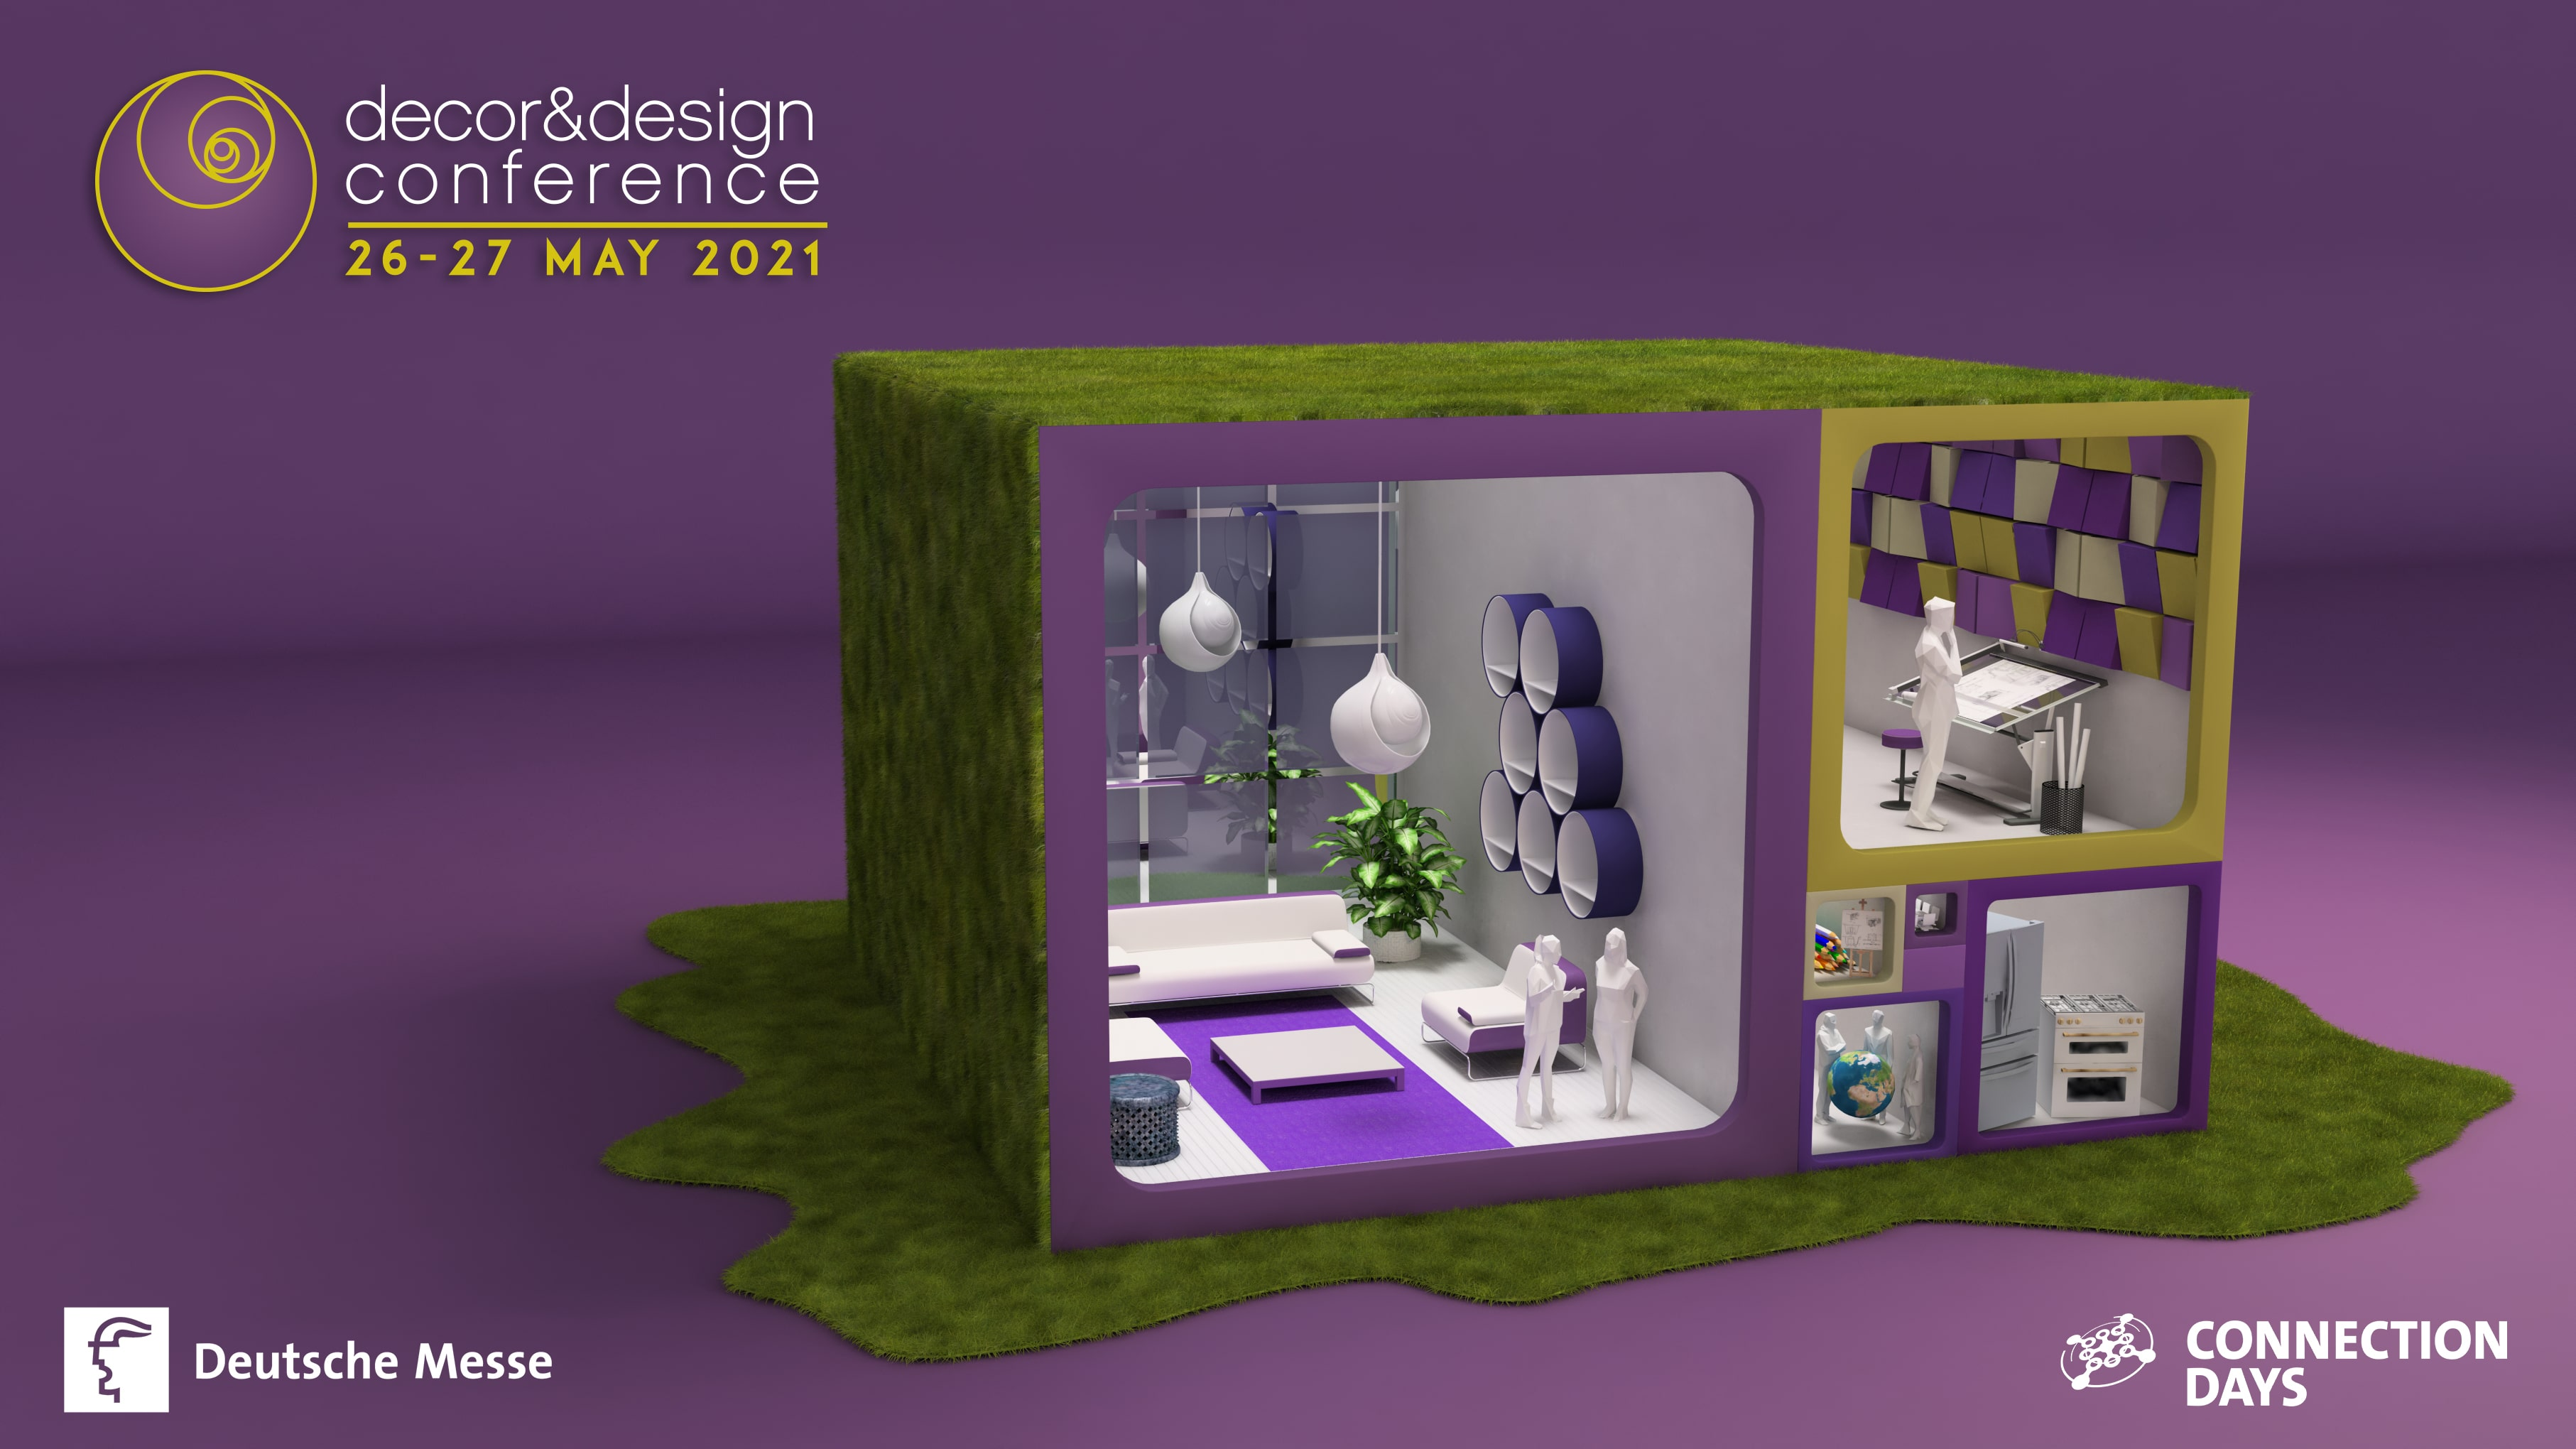 Decor & Design Conference - May 26-6, 2021